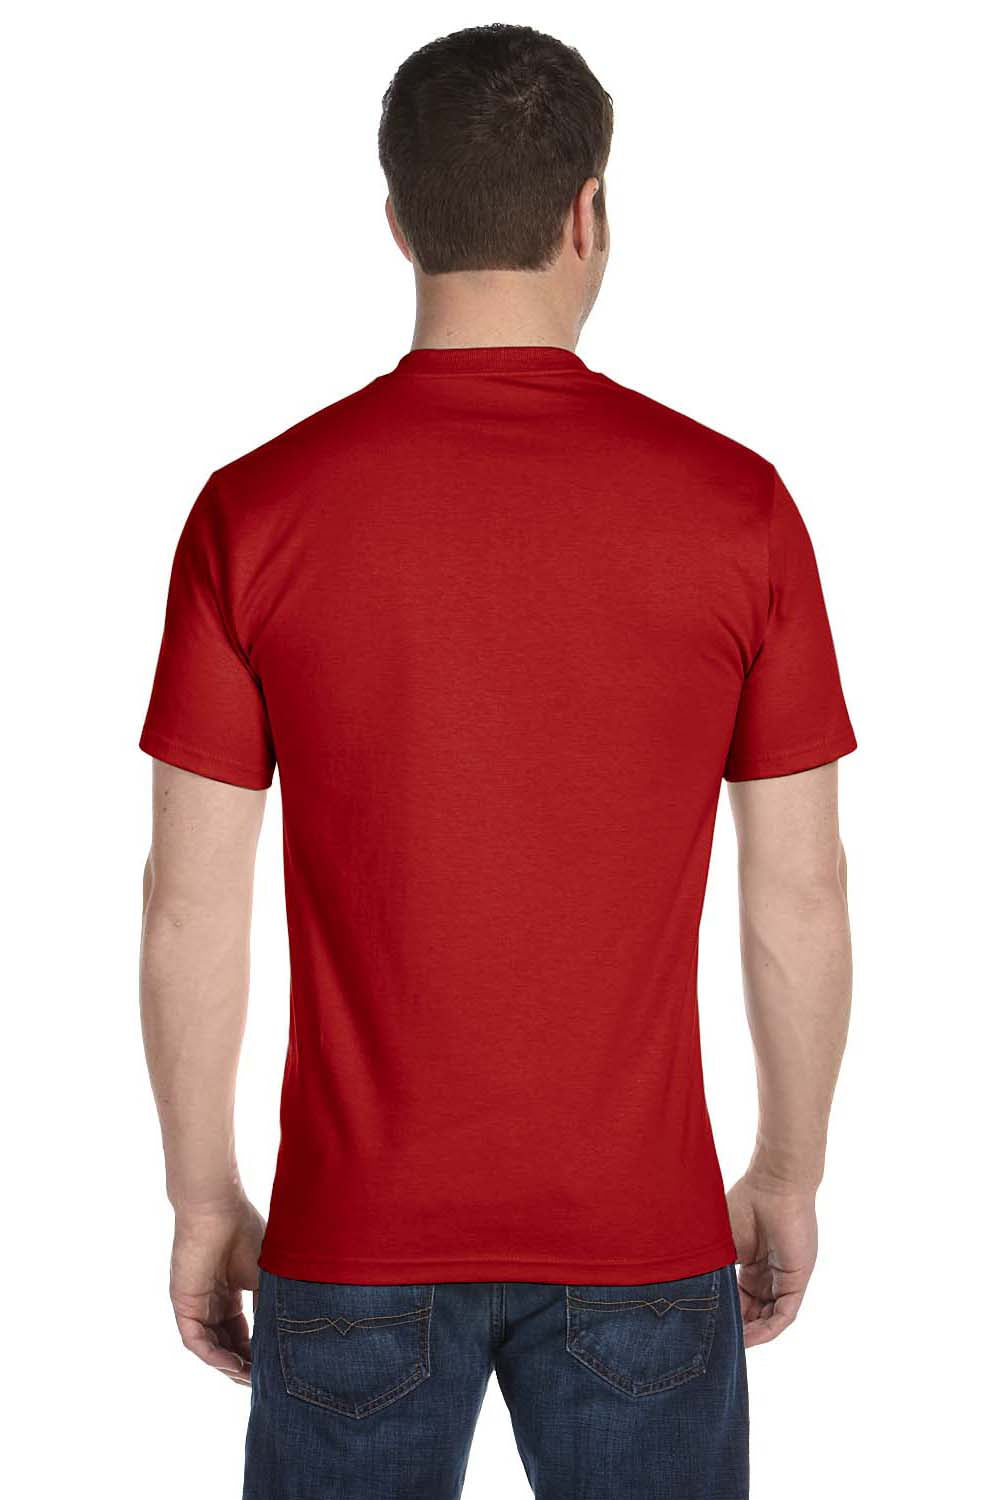 Hanes 5280 Mens ComfortSoft Short Sleeve Crewneck T-Shirt Red Back